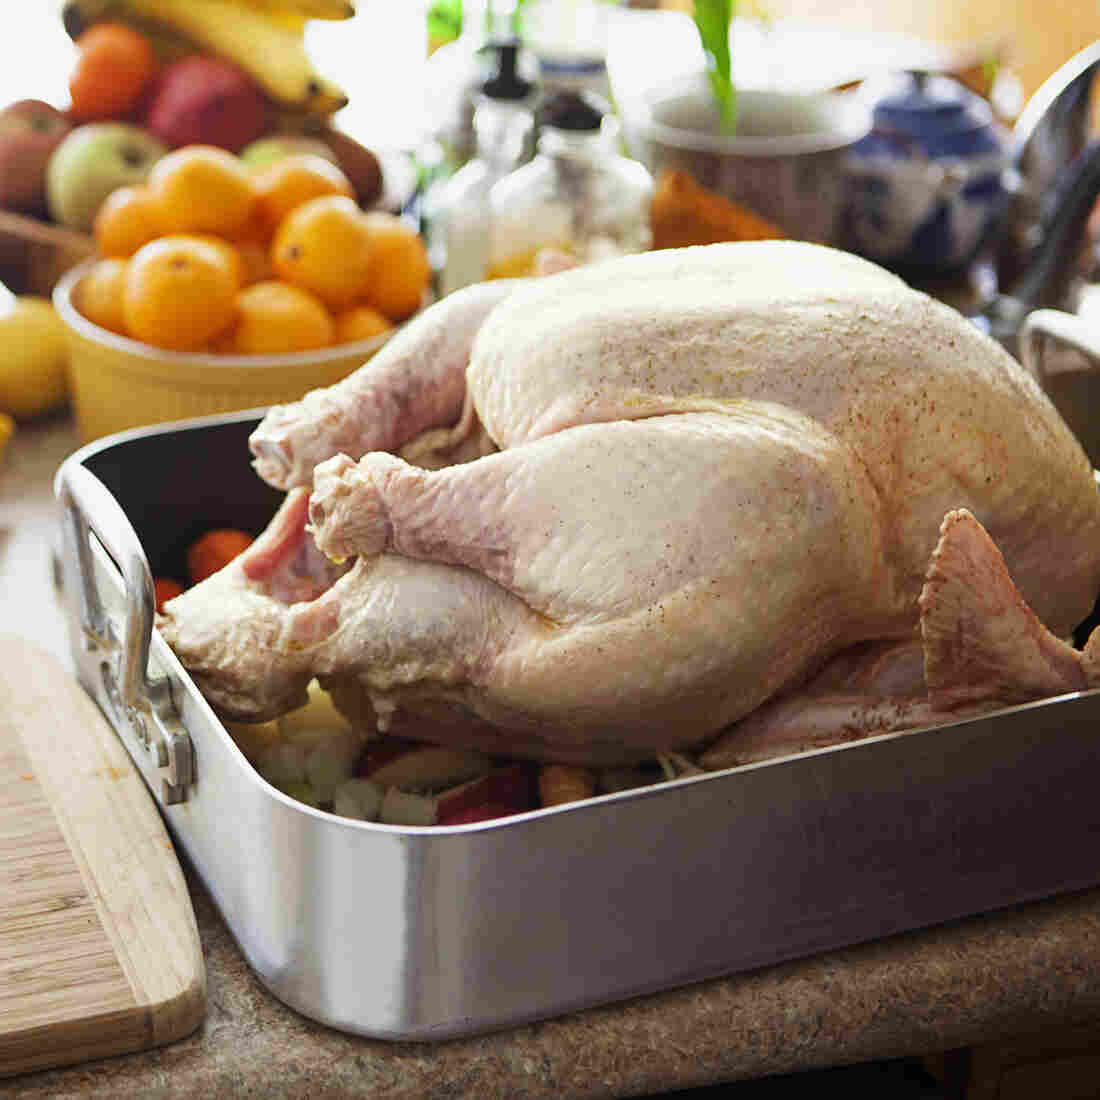 Your turkey should still be prepared on Thanksgiving Day. But many of the side dishes can be prepared ahead of time.